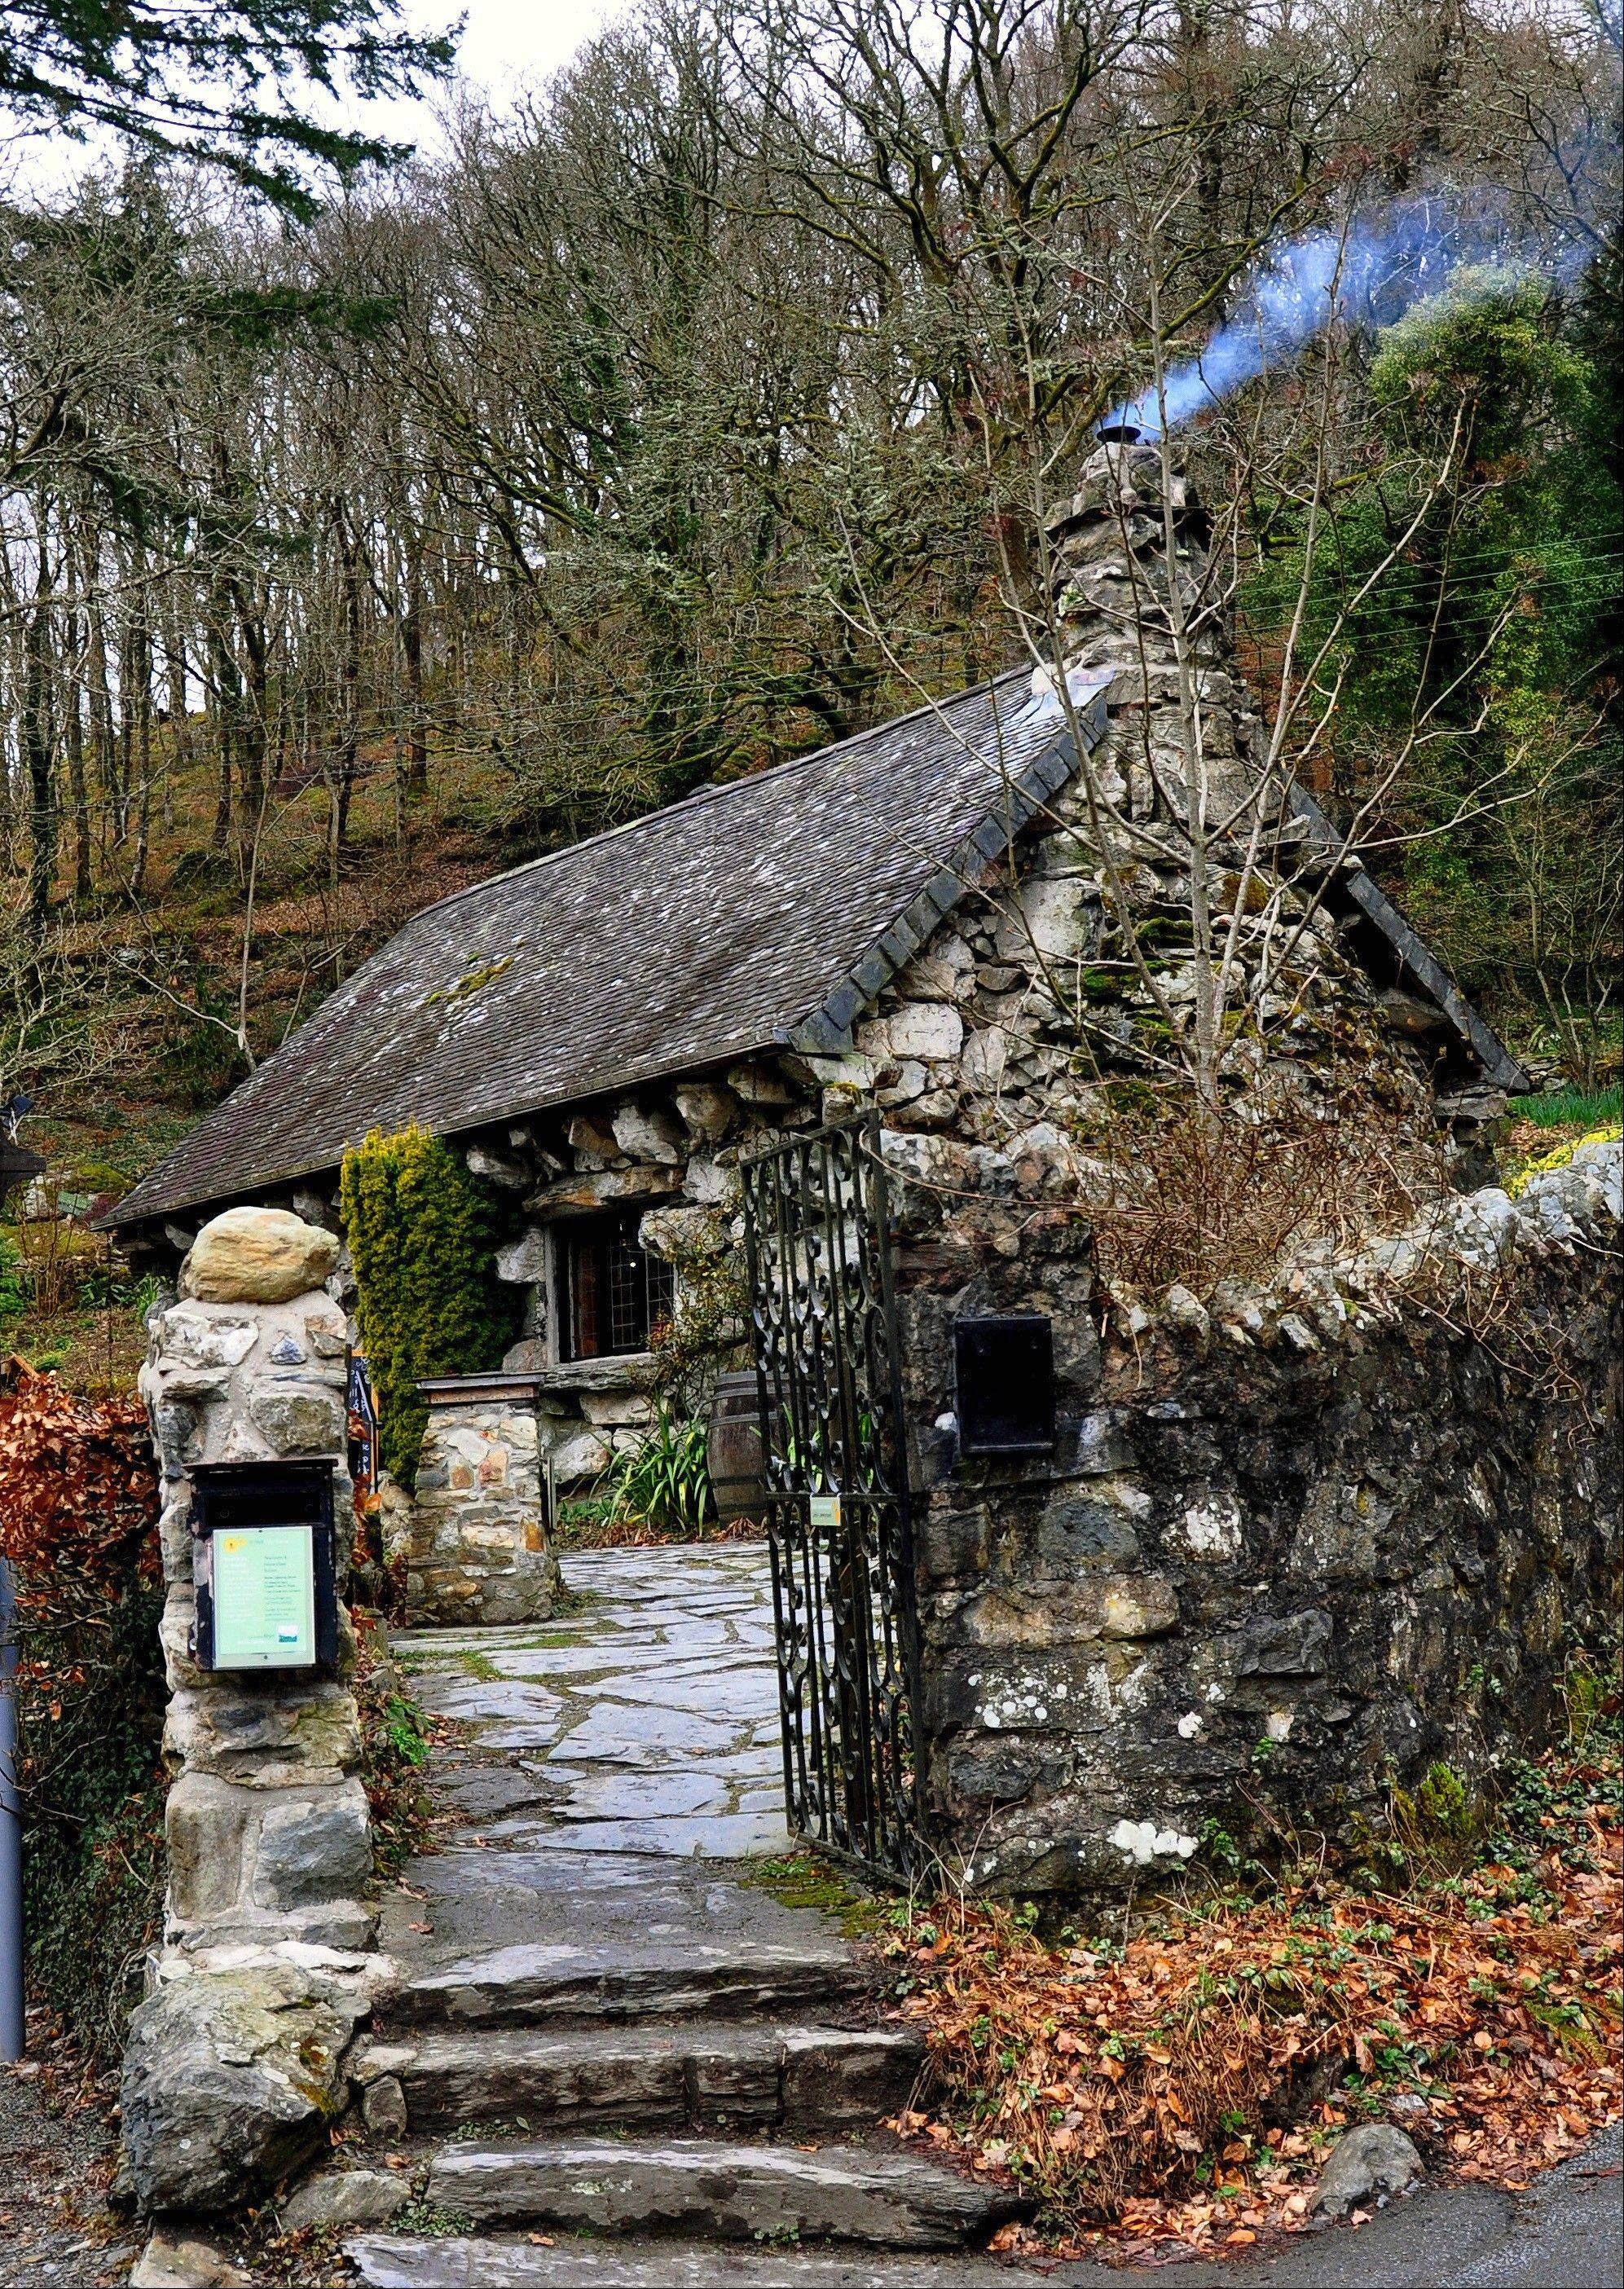 The Ugly House was headquarters of the Snowdonia Society until it opened as a tea room last year. The ancient stone cottage sits along the A5, the main route into Snowdonia National Park.